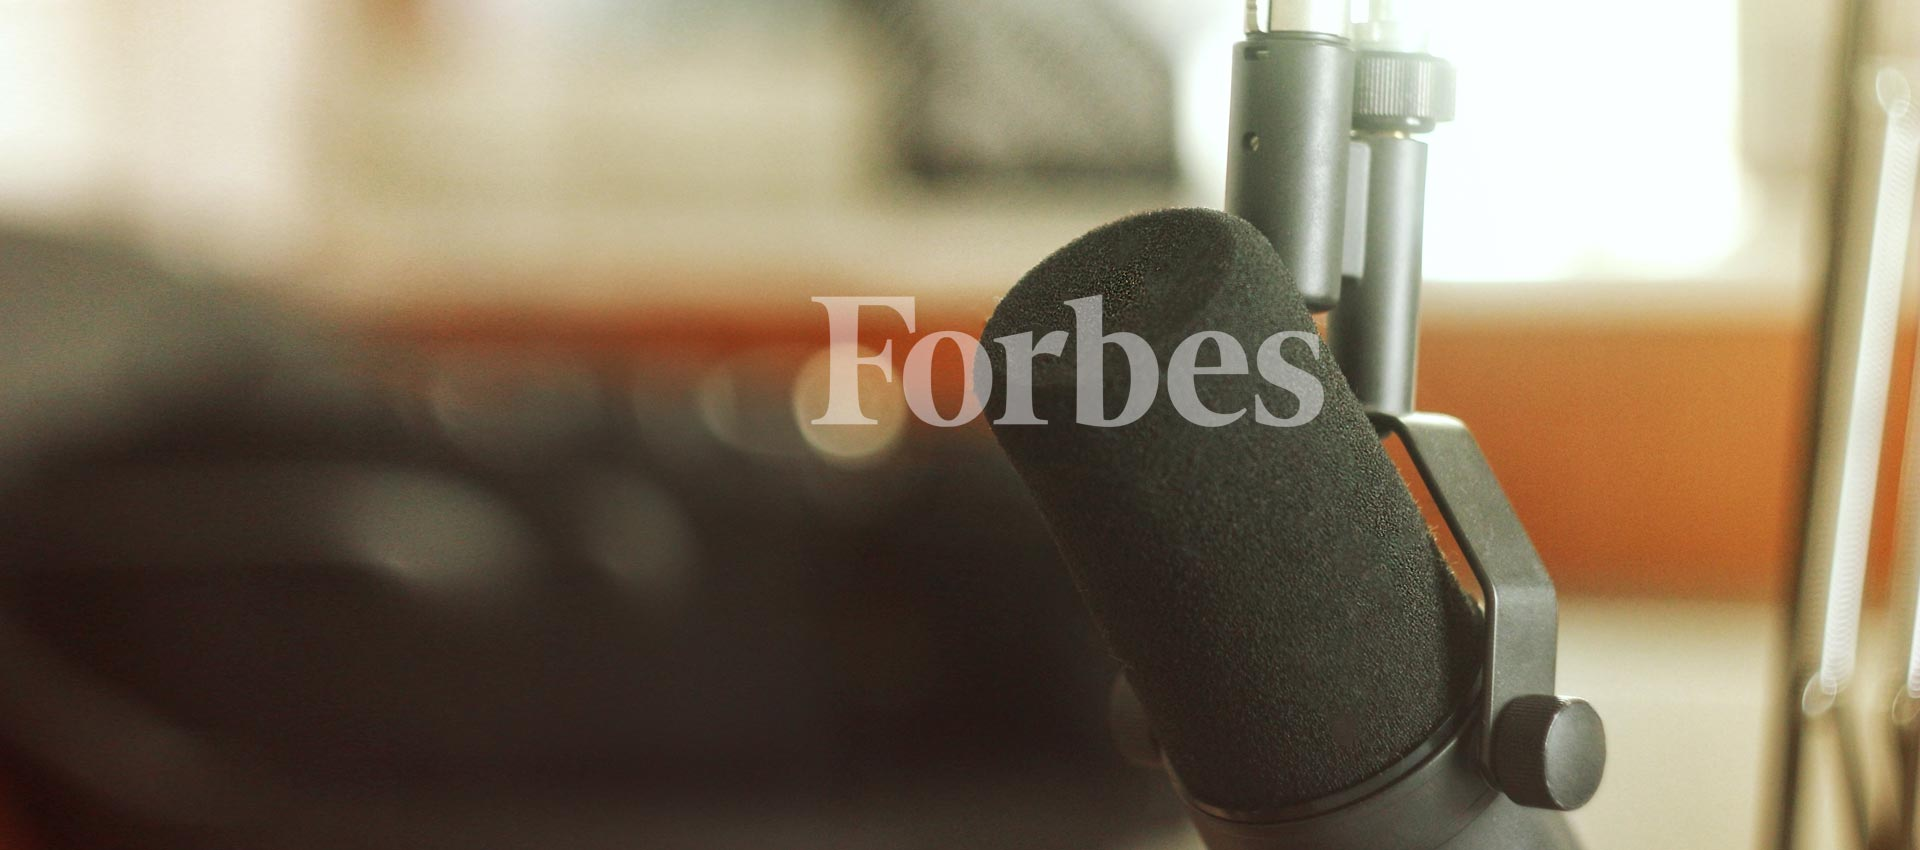 C3 - Forbes Interview Microphone